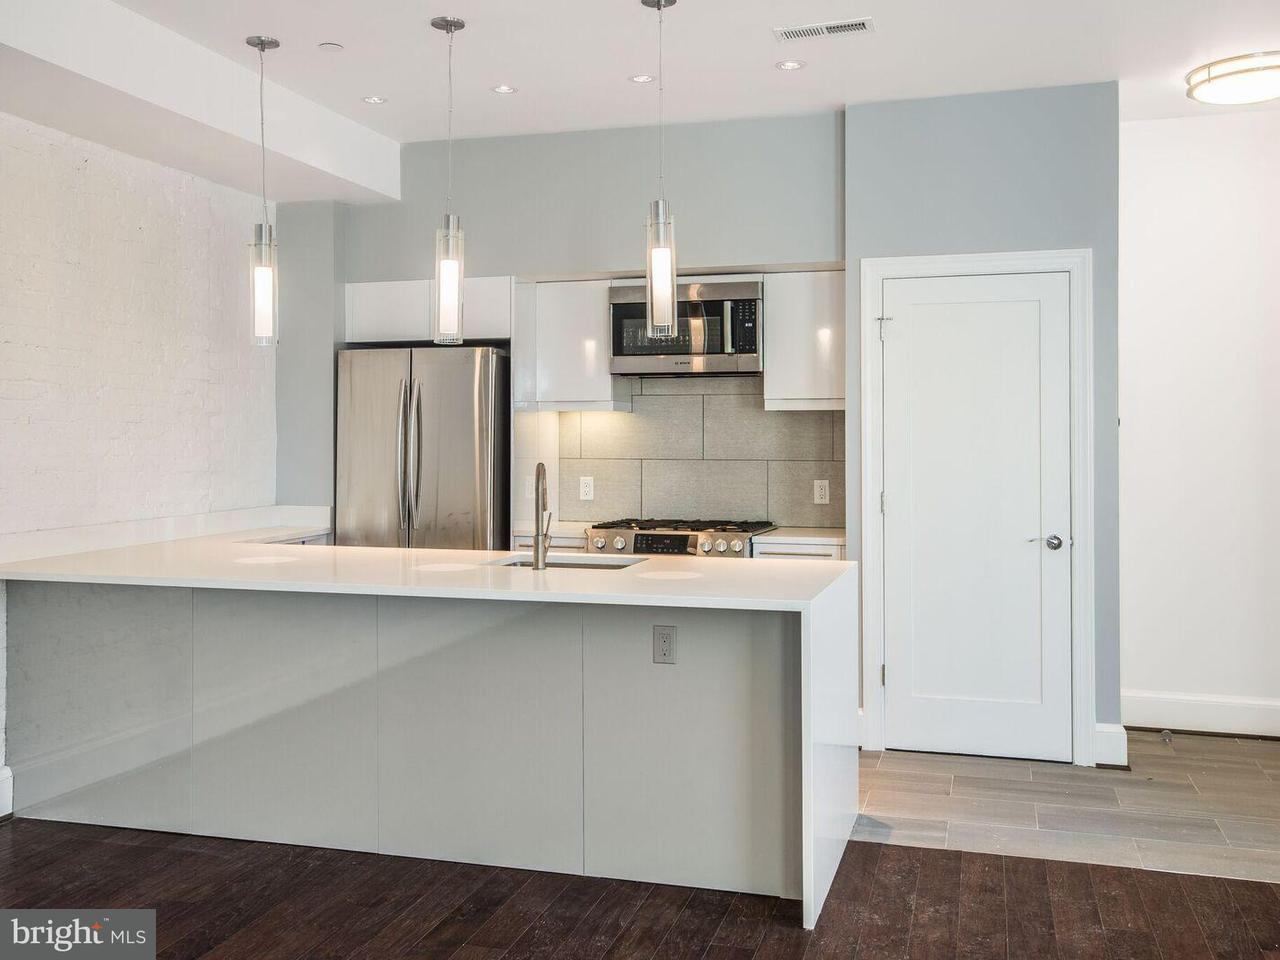 Other Residential for Rent at 1252 Wisconsin Ave NW #201 Washington, District Of Columbia 20007 United States